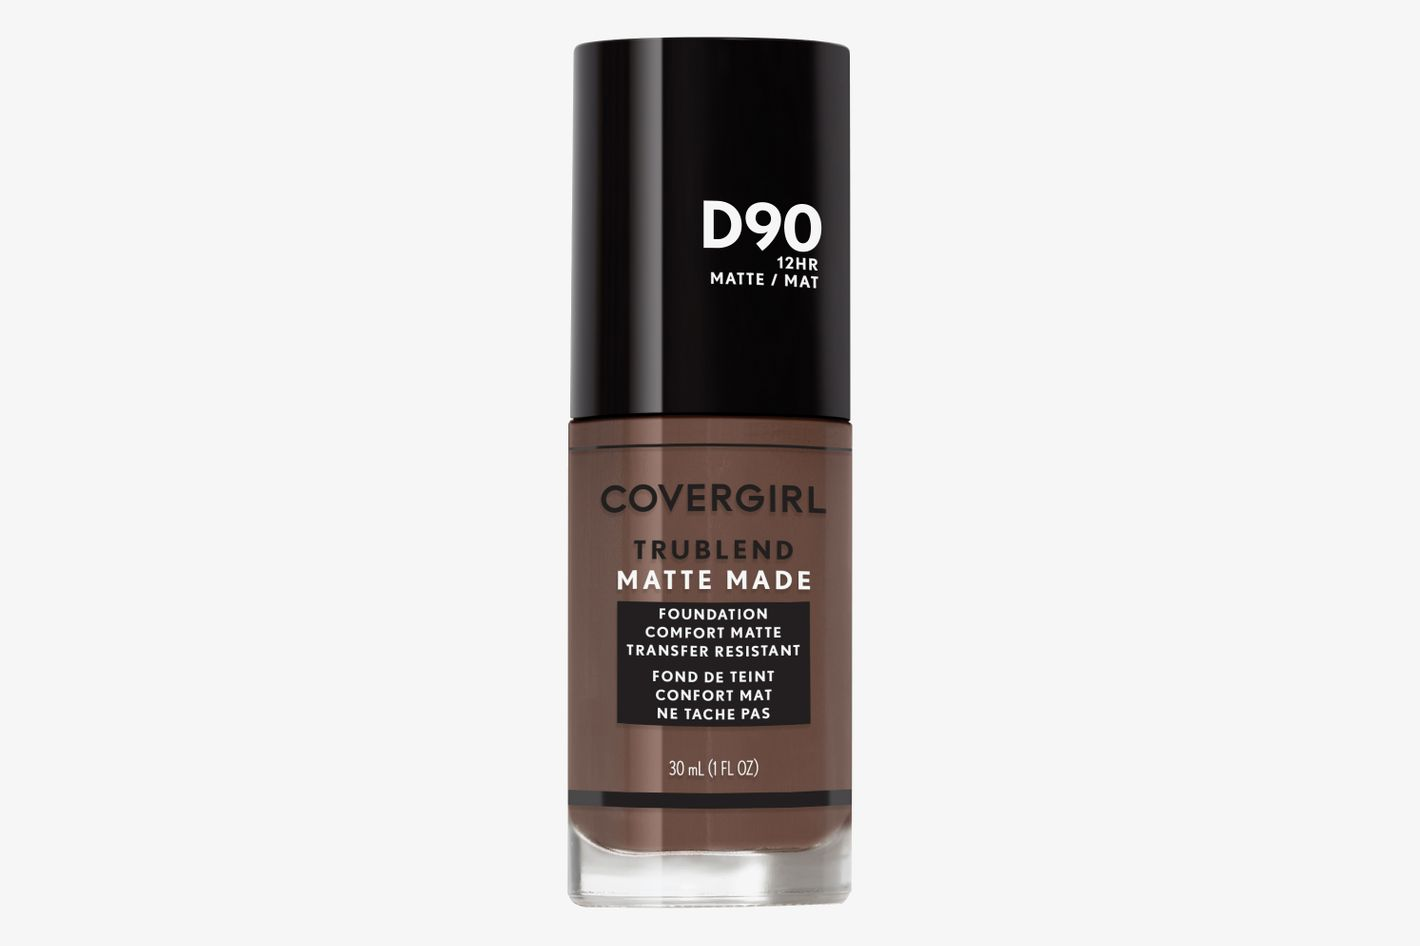 TruBlend Matte Made Liquid Foundation in D90